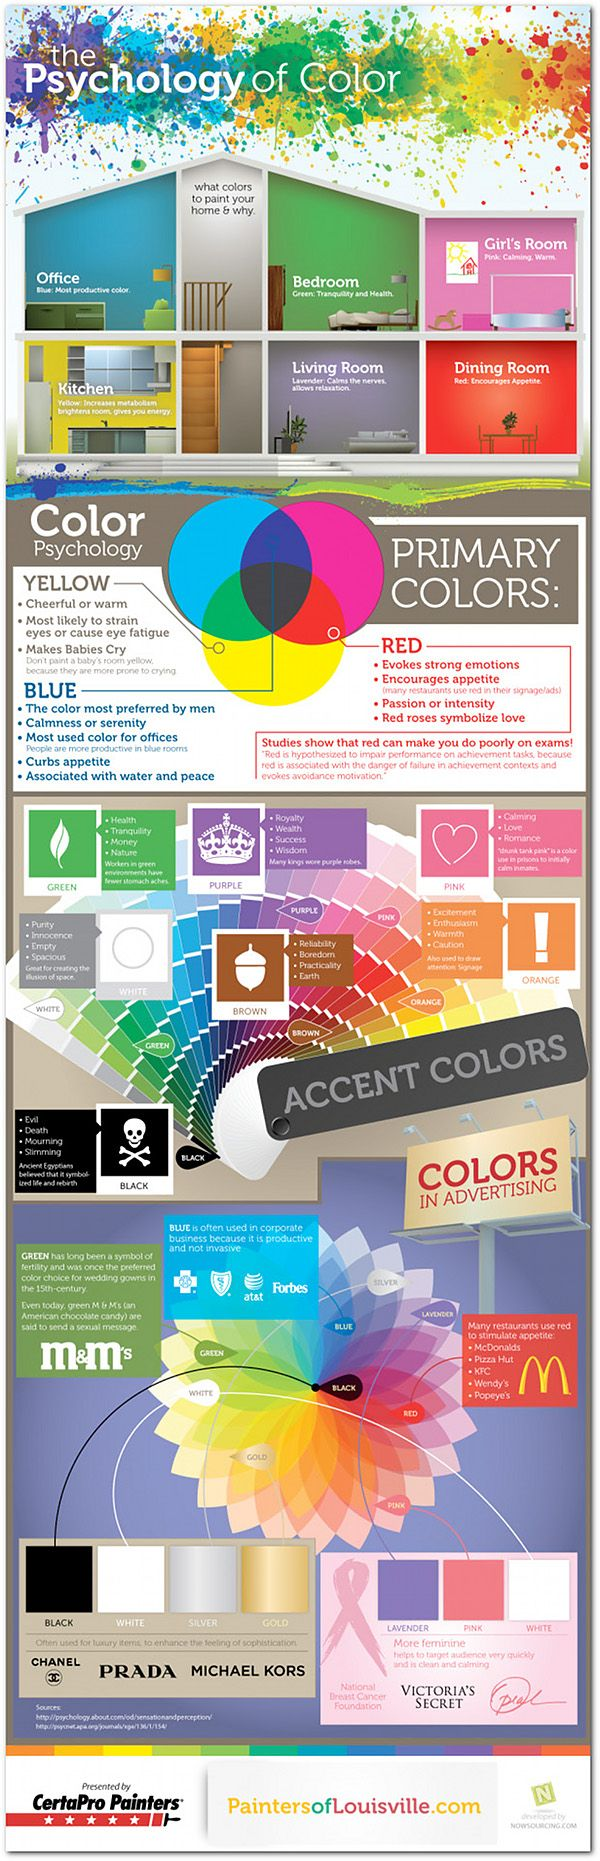 the psychology of color / why marketers use certain colors [infographic]